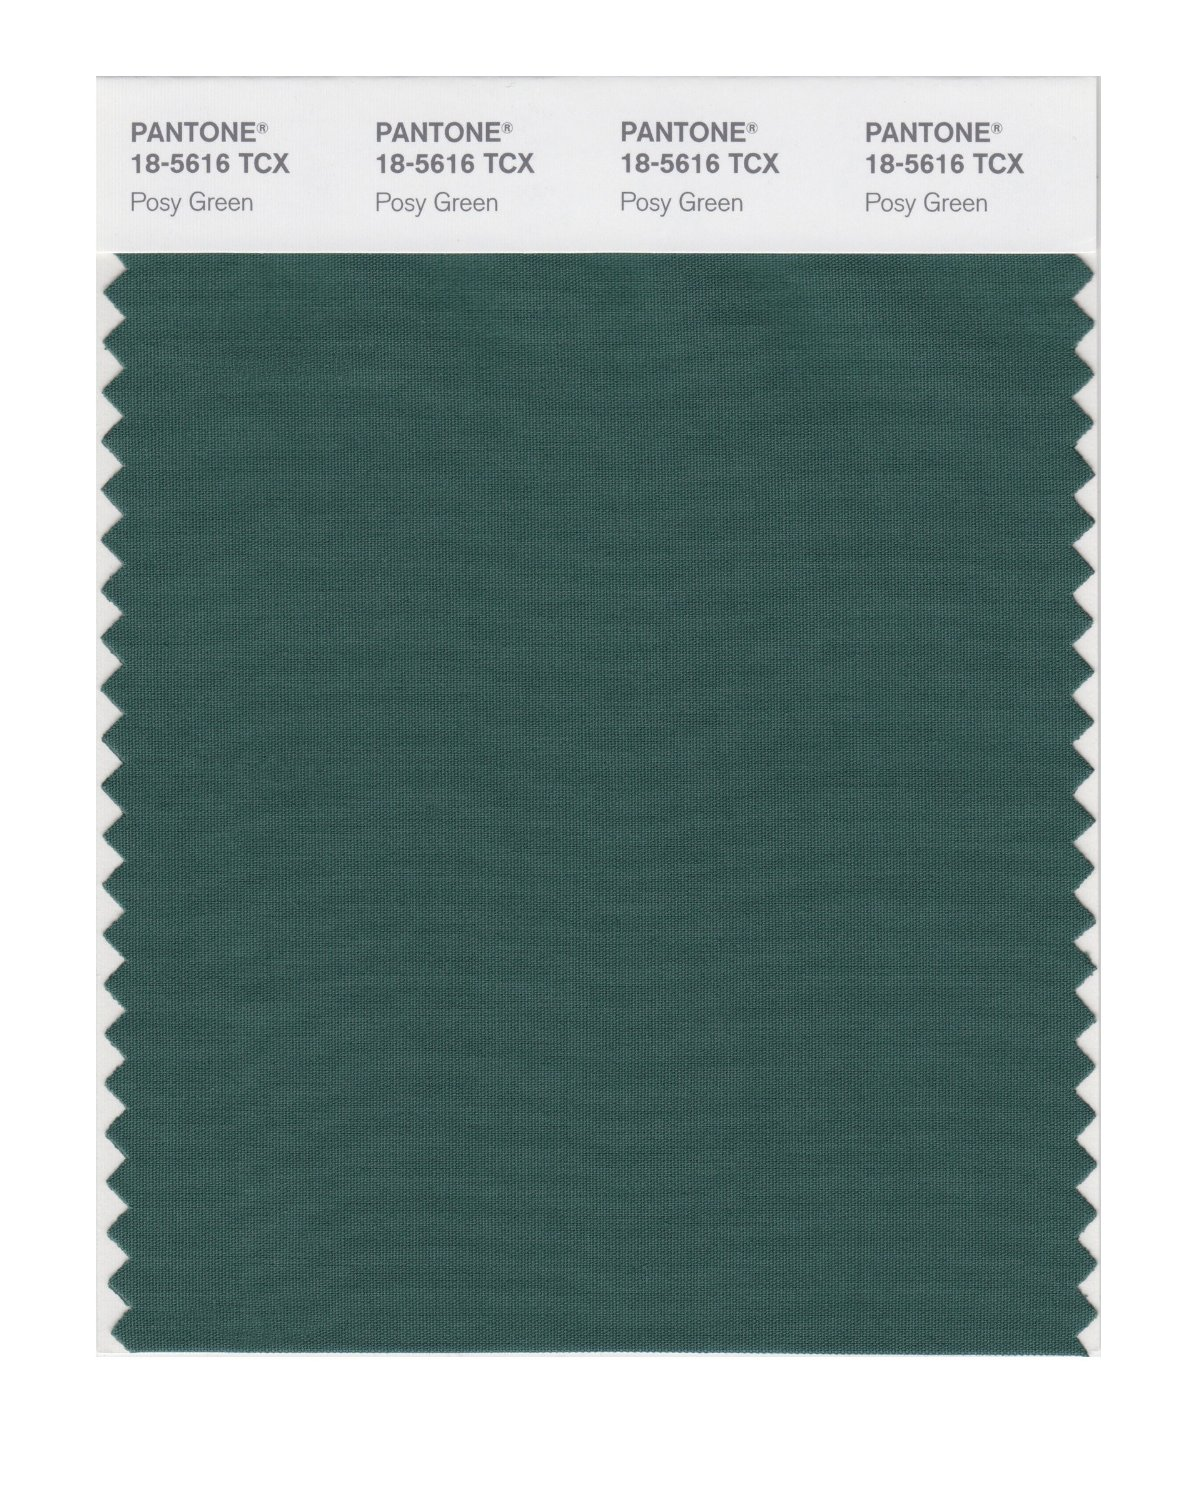 Pantone Smart Swatch 18-5616 Posy Green